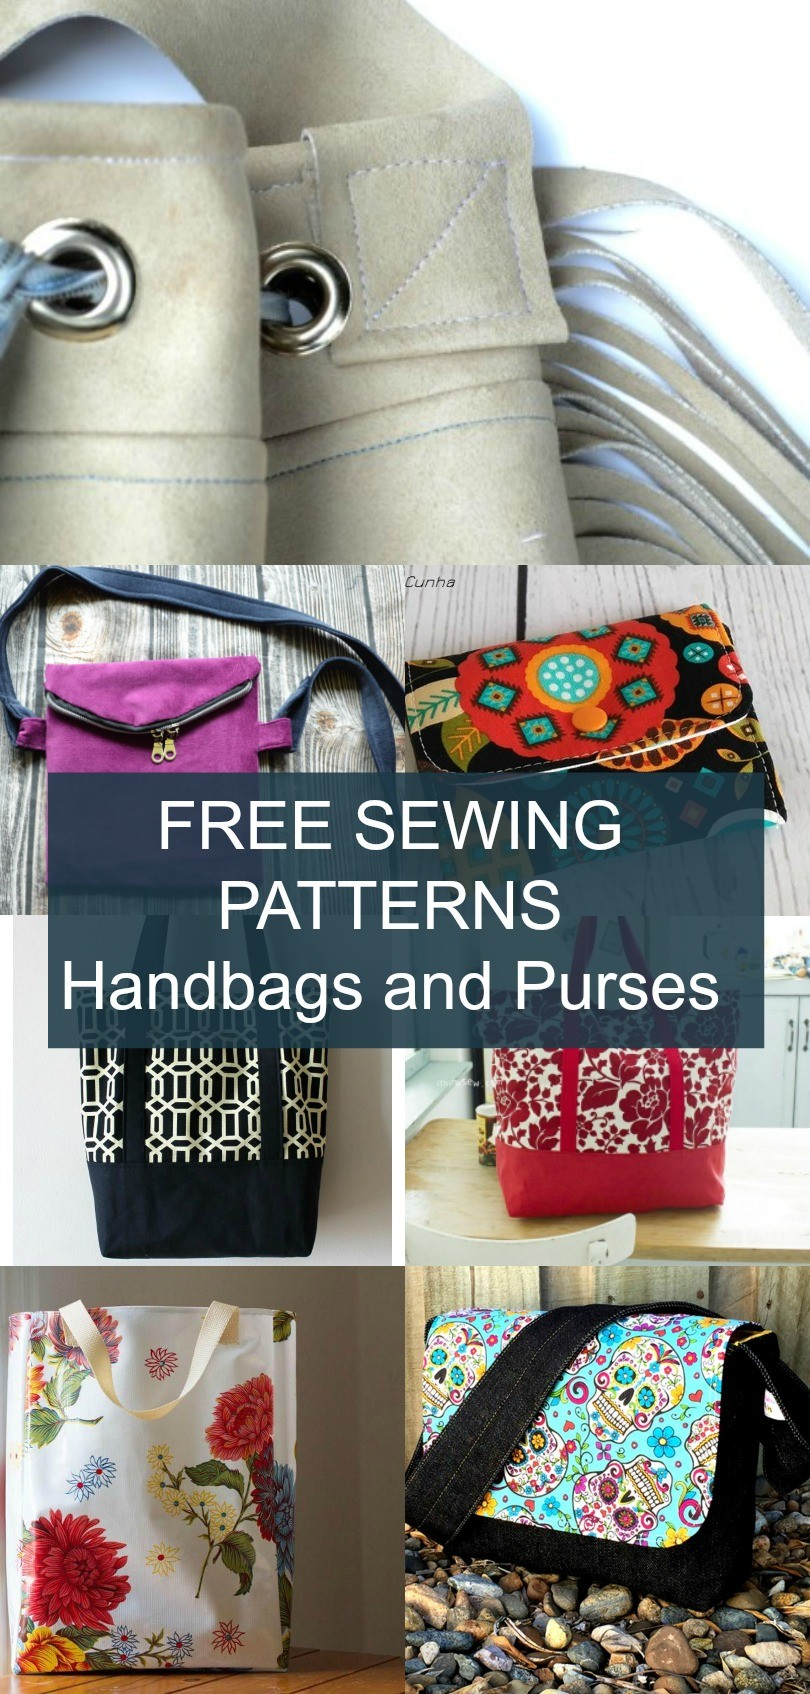 It's just a photo of Juicy Free Printable Sewing Patterns Online